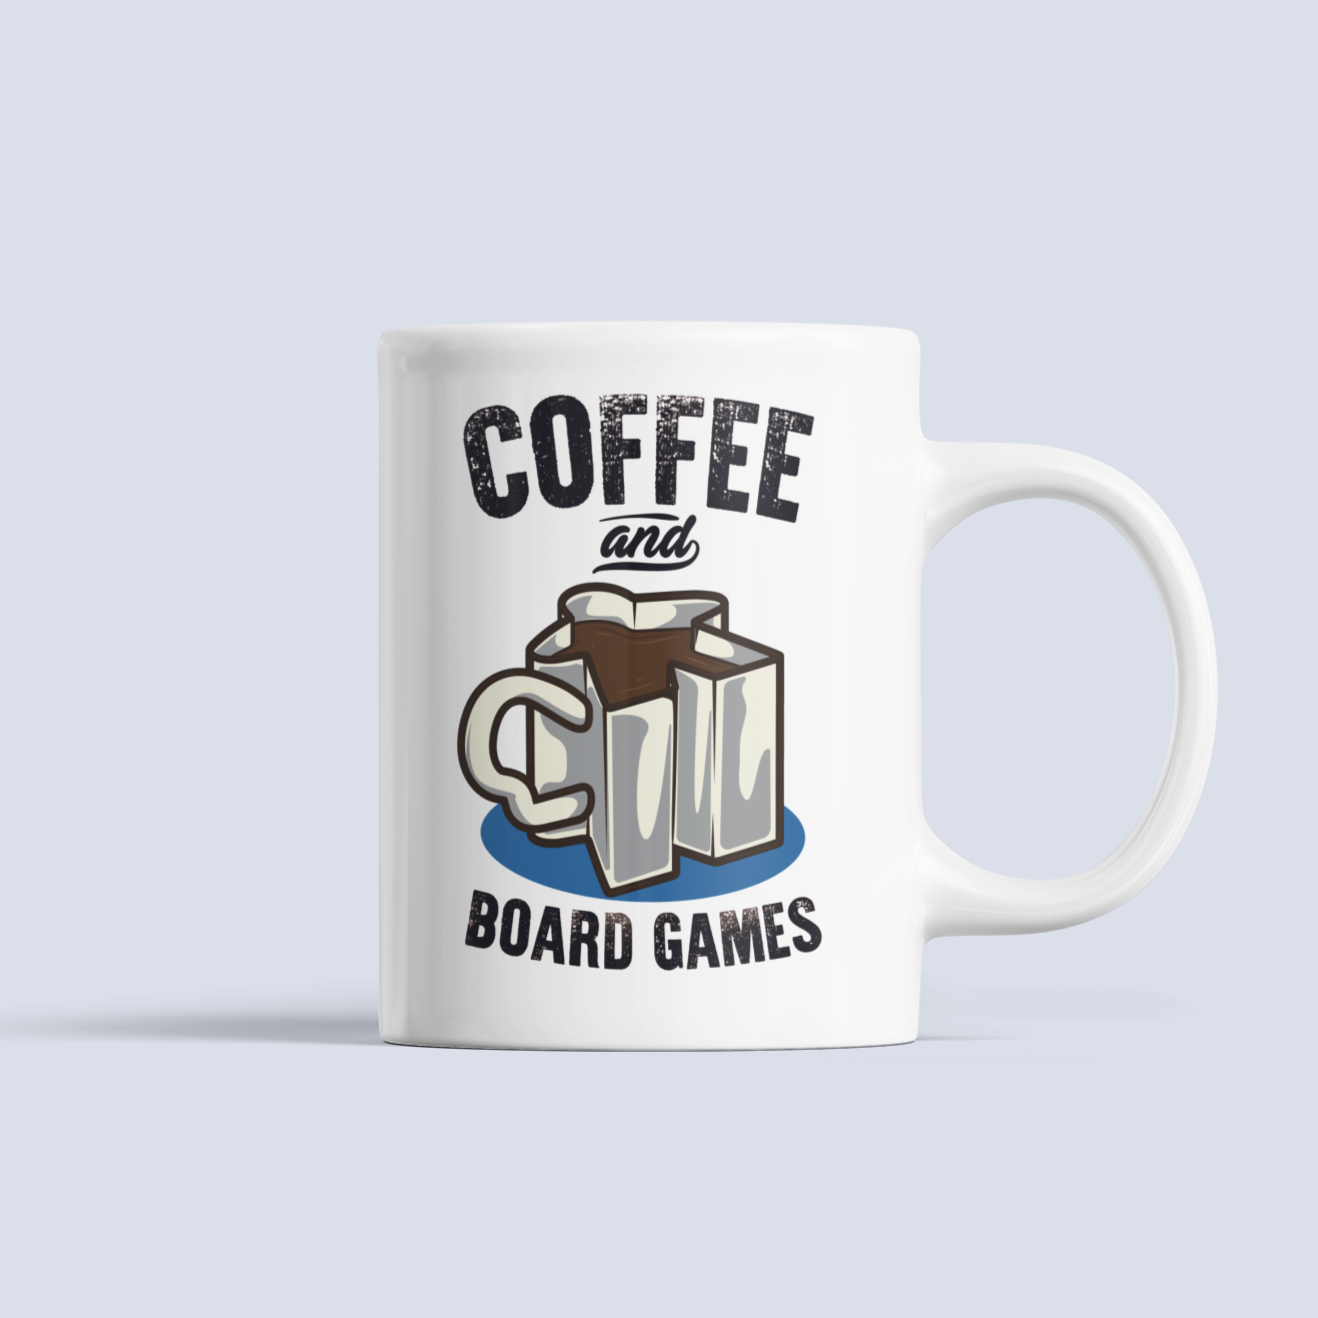 Coffee and Board Games Ceramic Mug